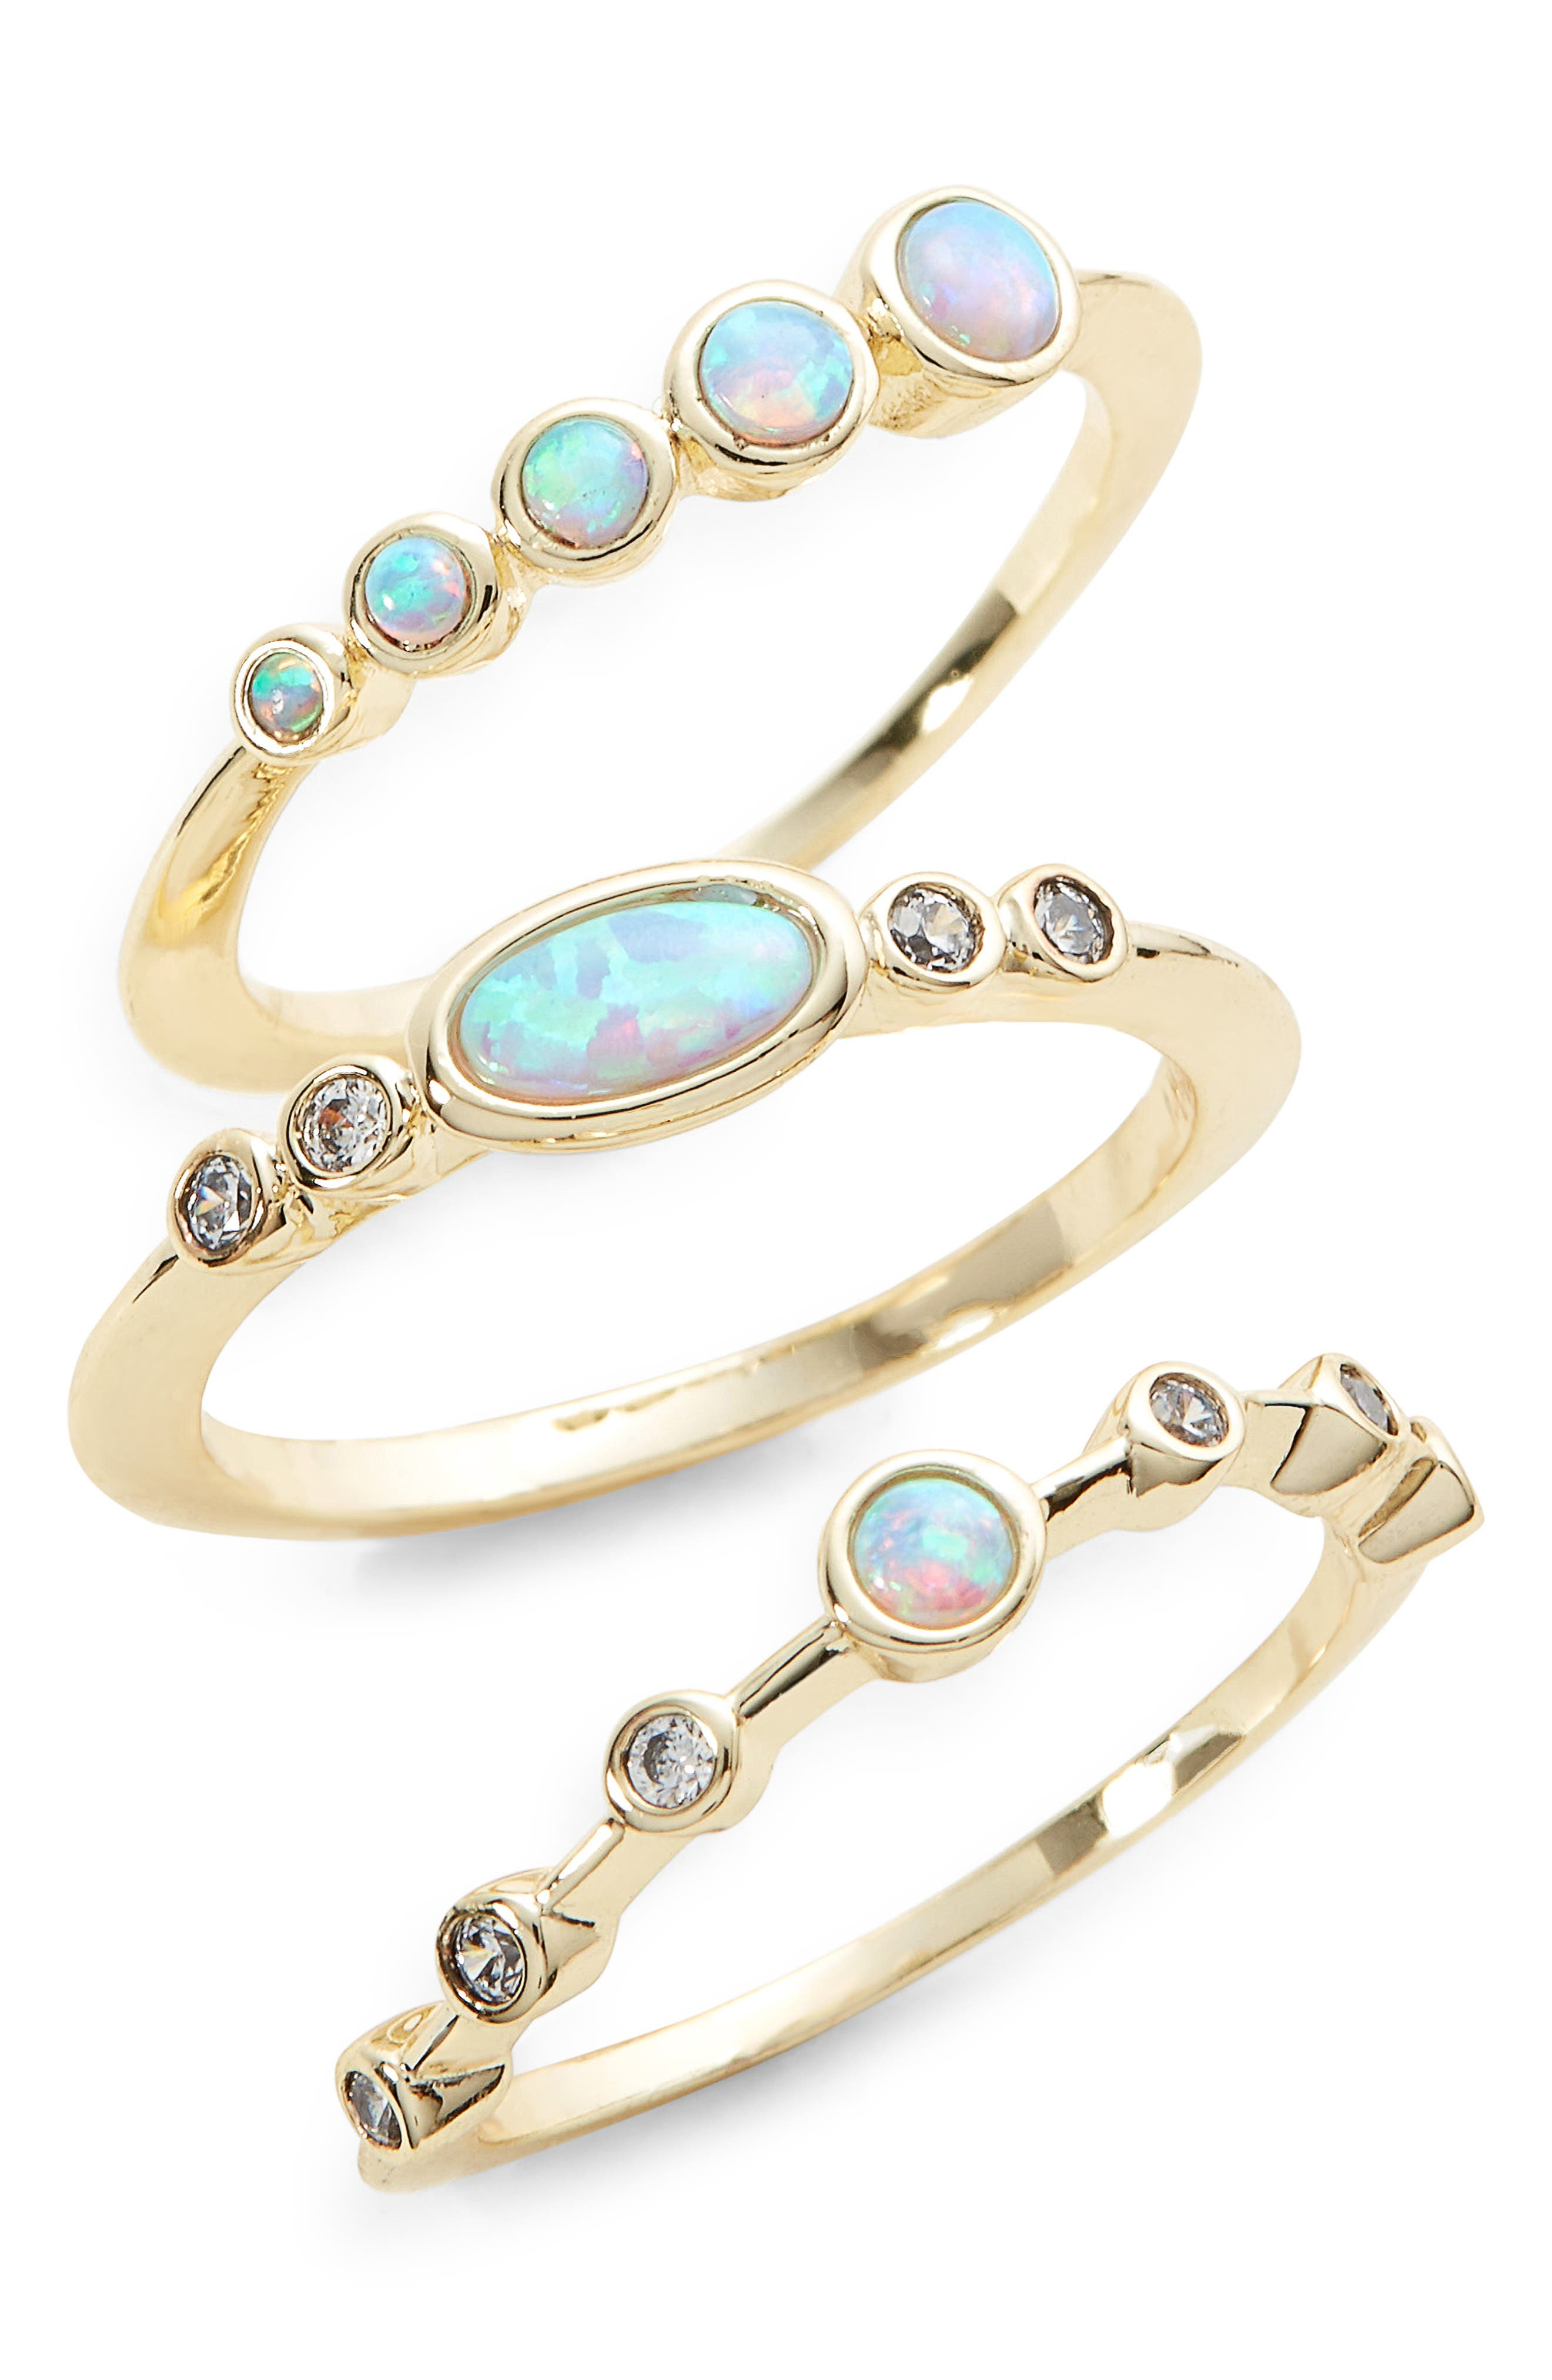 Monet Set of Three Opal Stacking Rings,                         Main,                         color, Opal/ Crystal